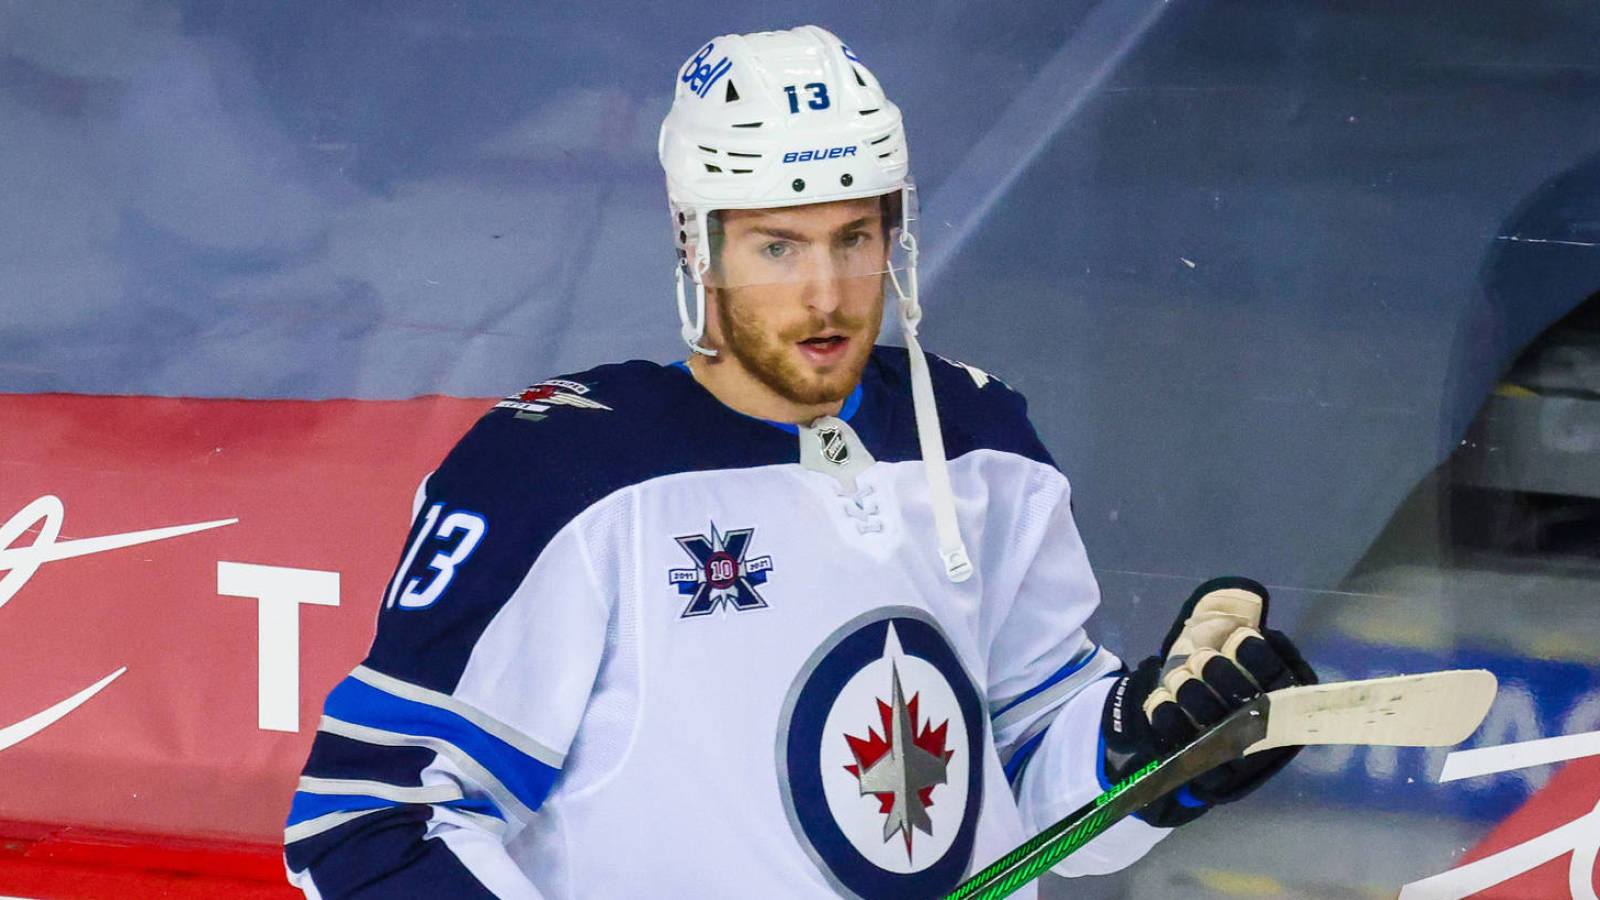 https://www.yardbarker.com/media/9/b/9b89f6f5076c9e2f9a9673eabf9ad4f05f7ac070/thumb_16x9/jets-activate-pierre-luc-dubois-move-him-wing.jpg?v=1